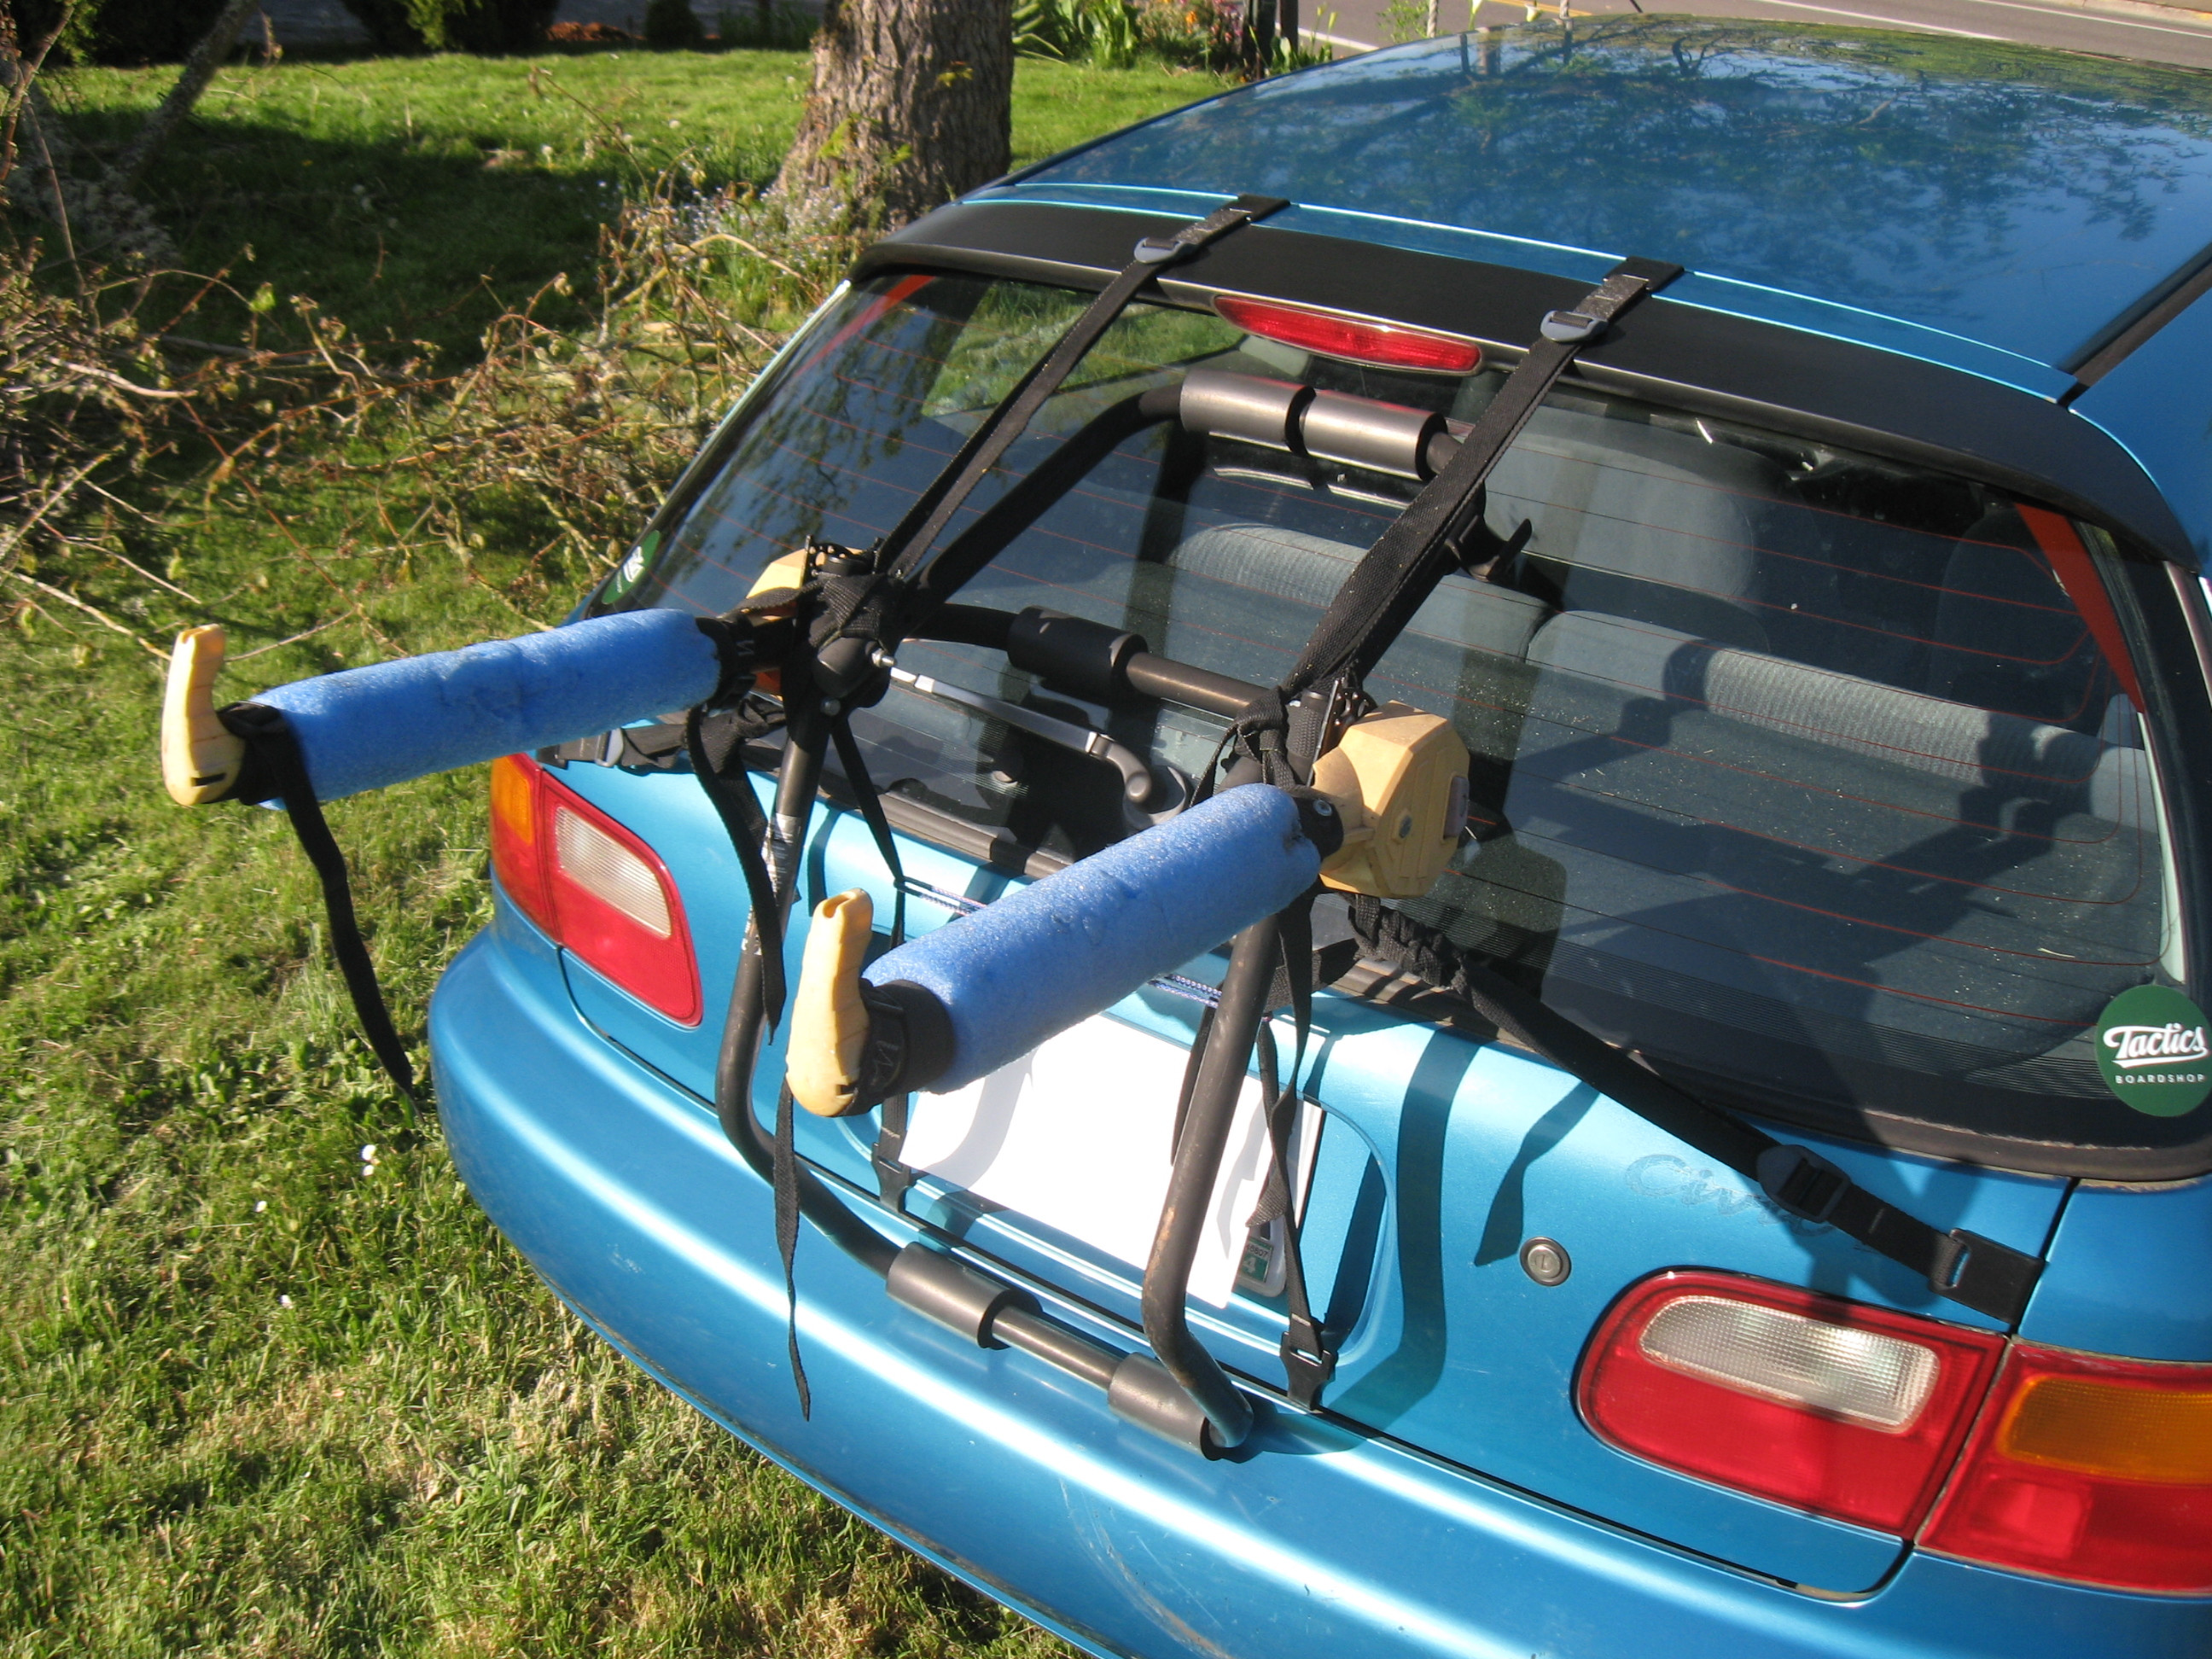 Best ideas about DIY Bike Racks . Save or Pin DiY Bike Racks Singletracks Mountain Bike News Now.